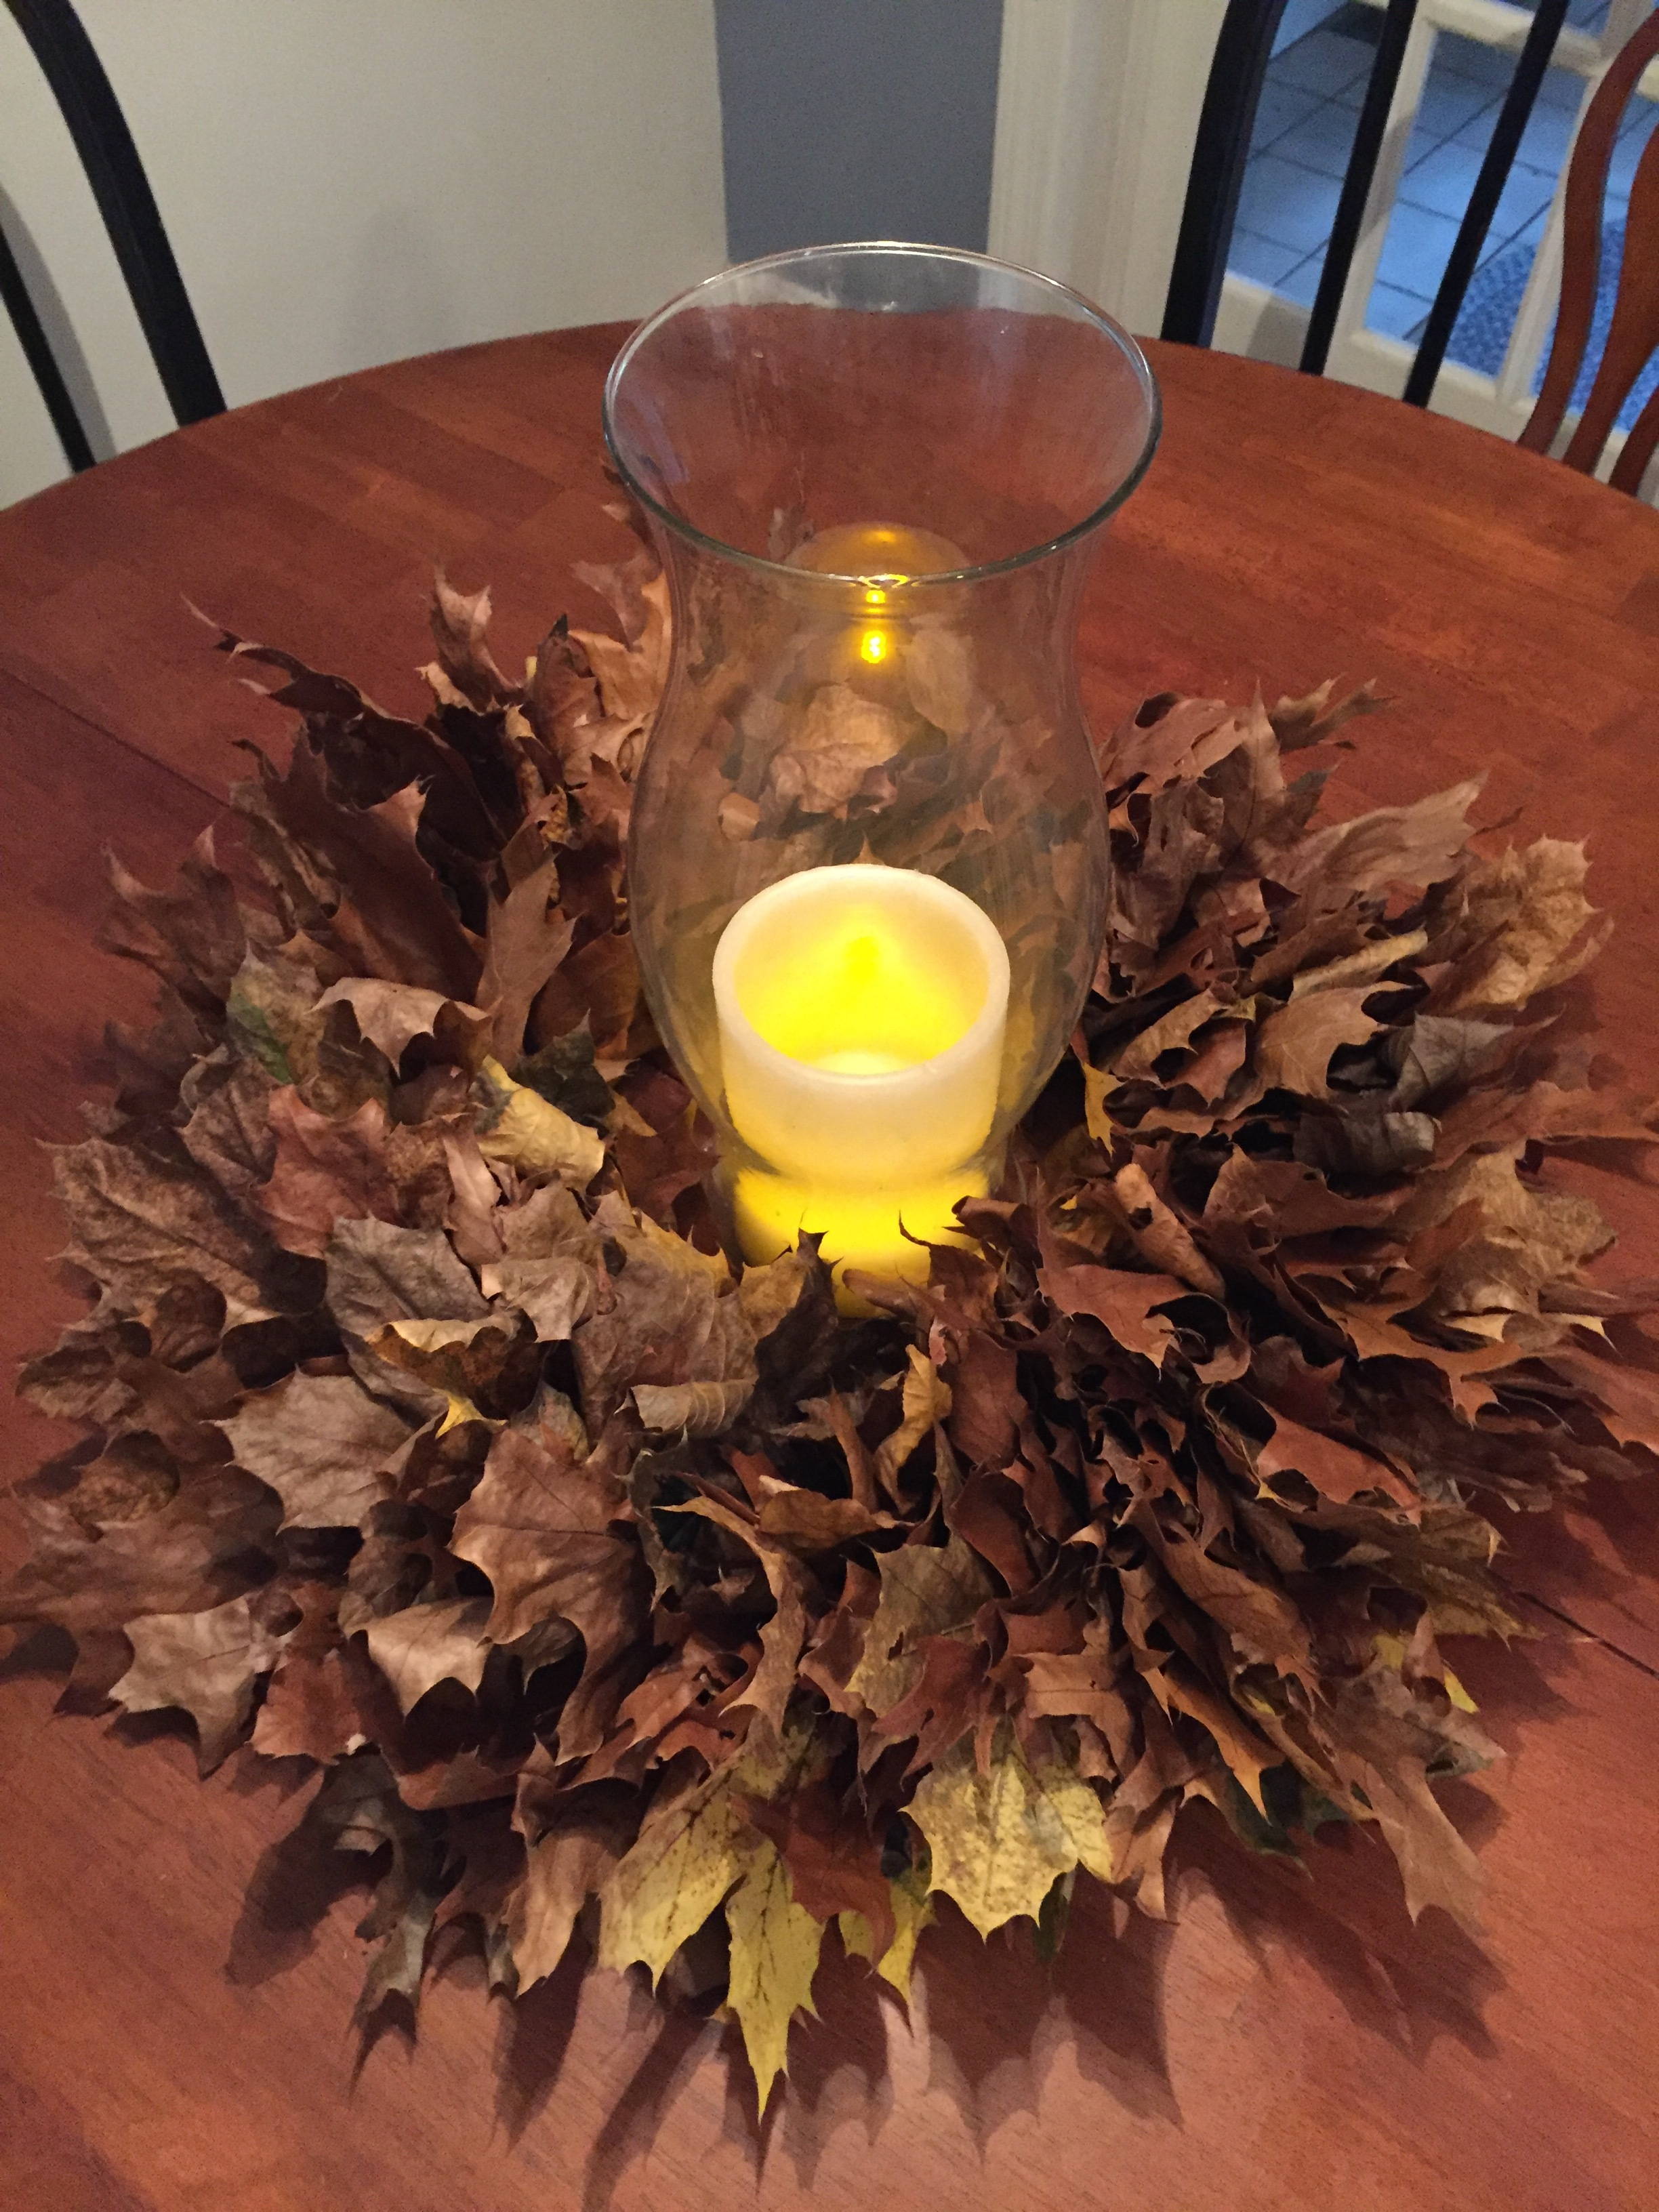 A battery operated candle was used, even with a glass hurricane around the wreath. The dried leaves are highly flammable.